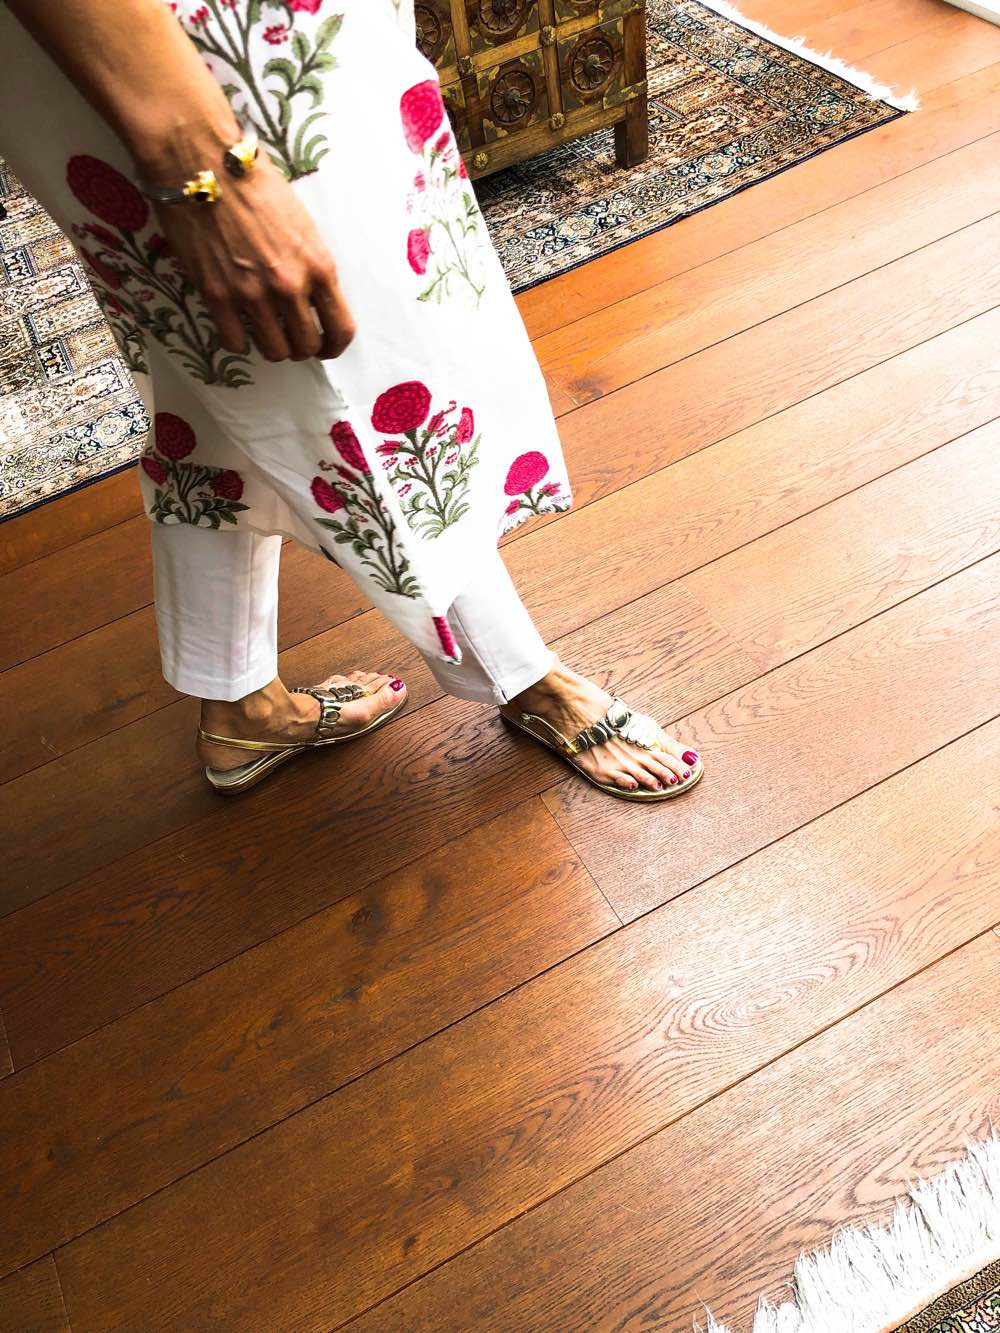 A view of a woman's feet in gold sandals with a corner of a pink and white block printed Indian dress over white trousers, Deepa Mer nutrition